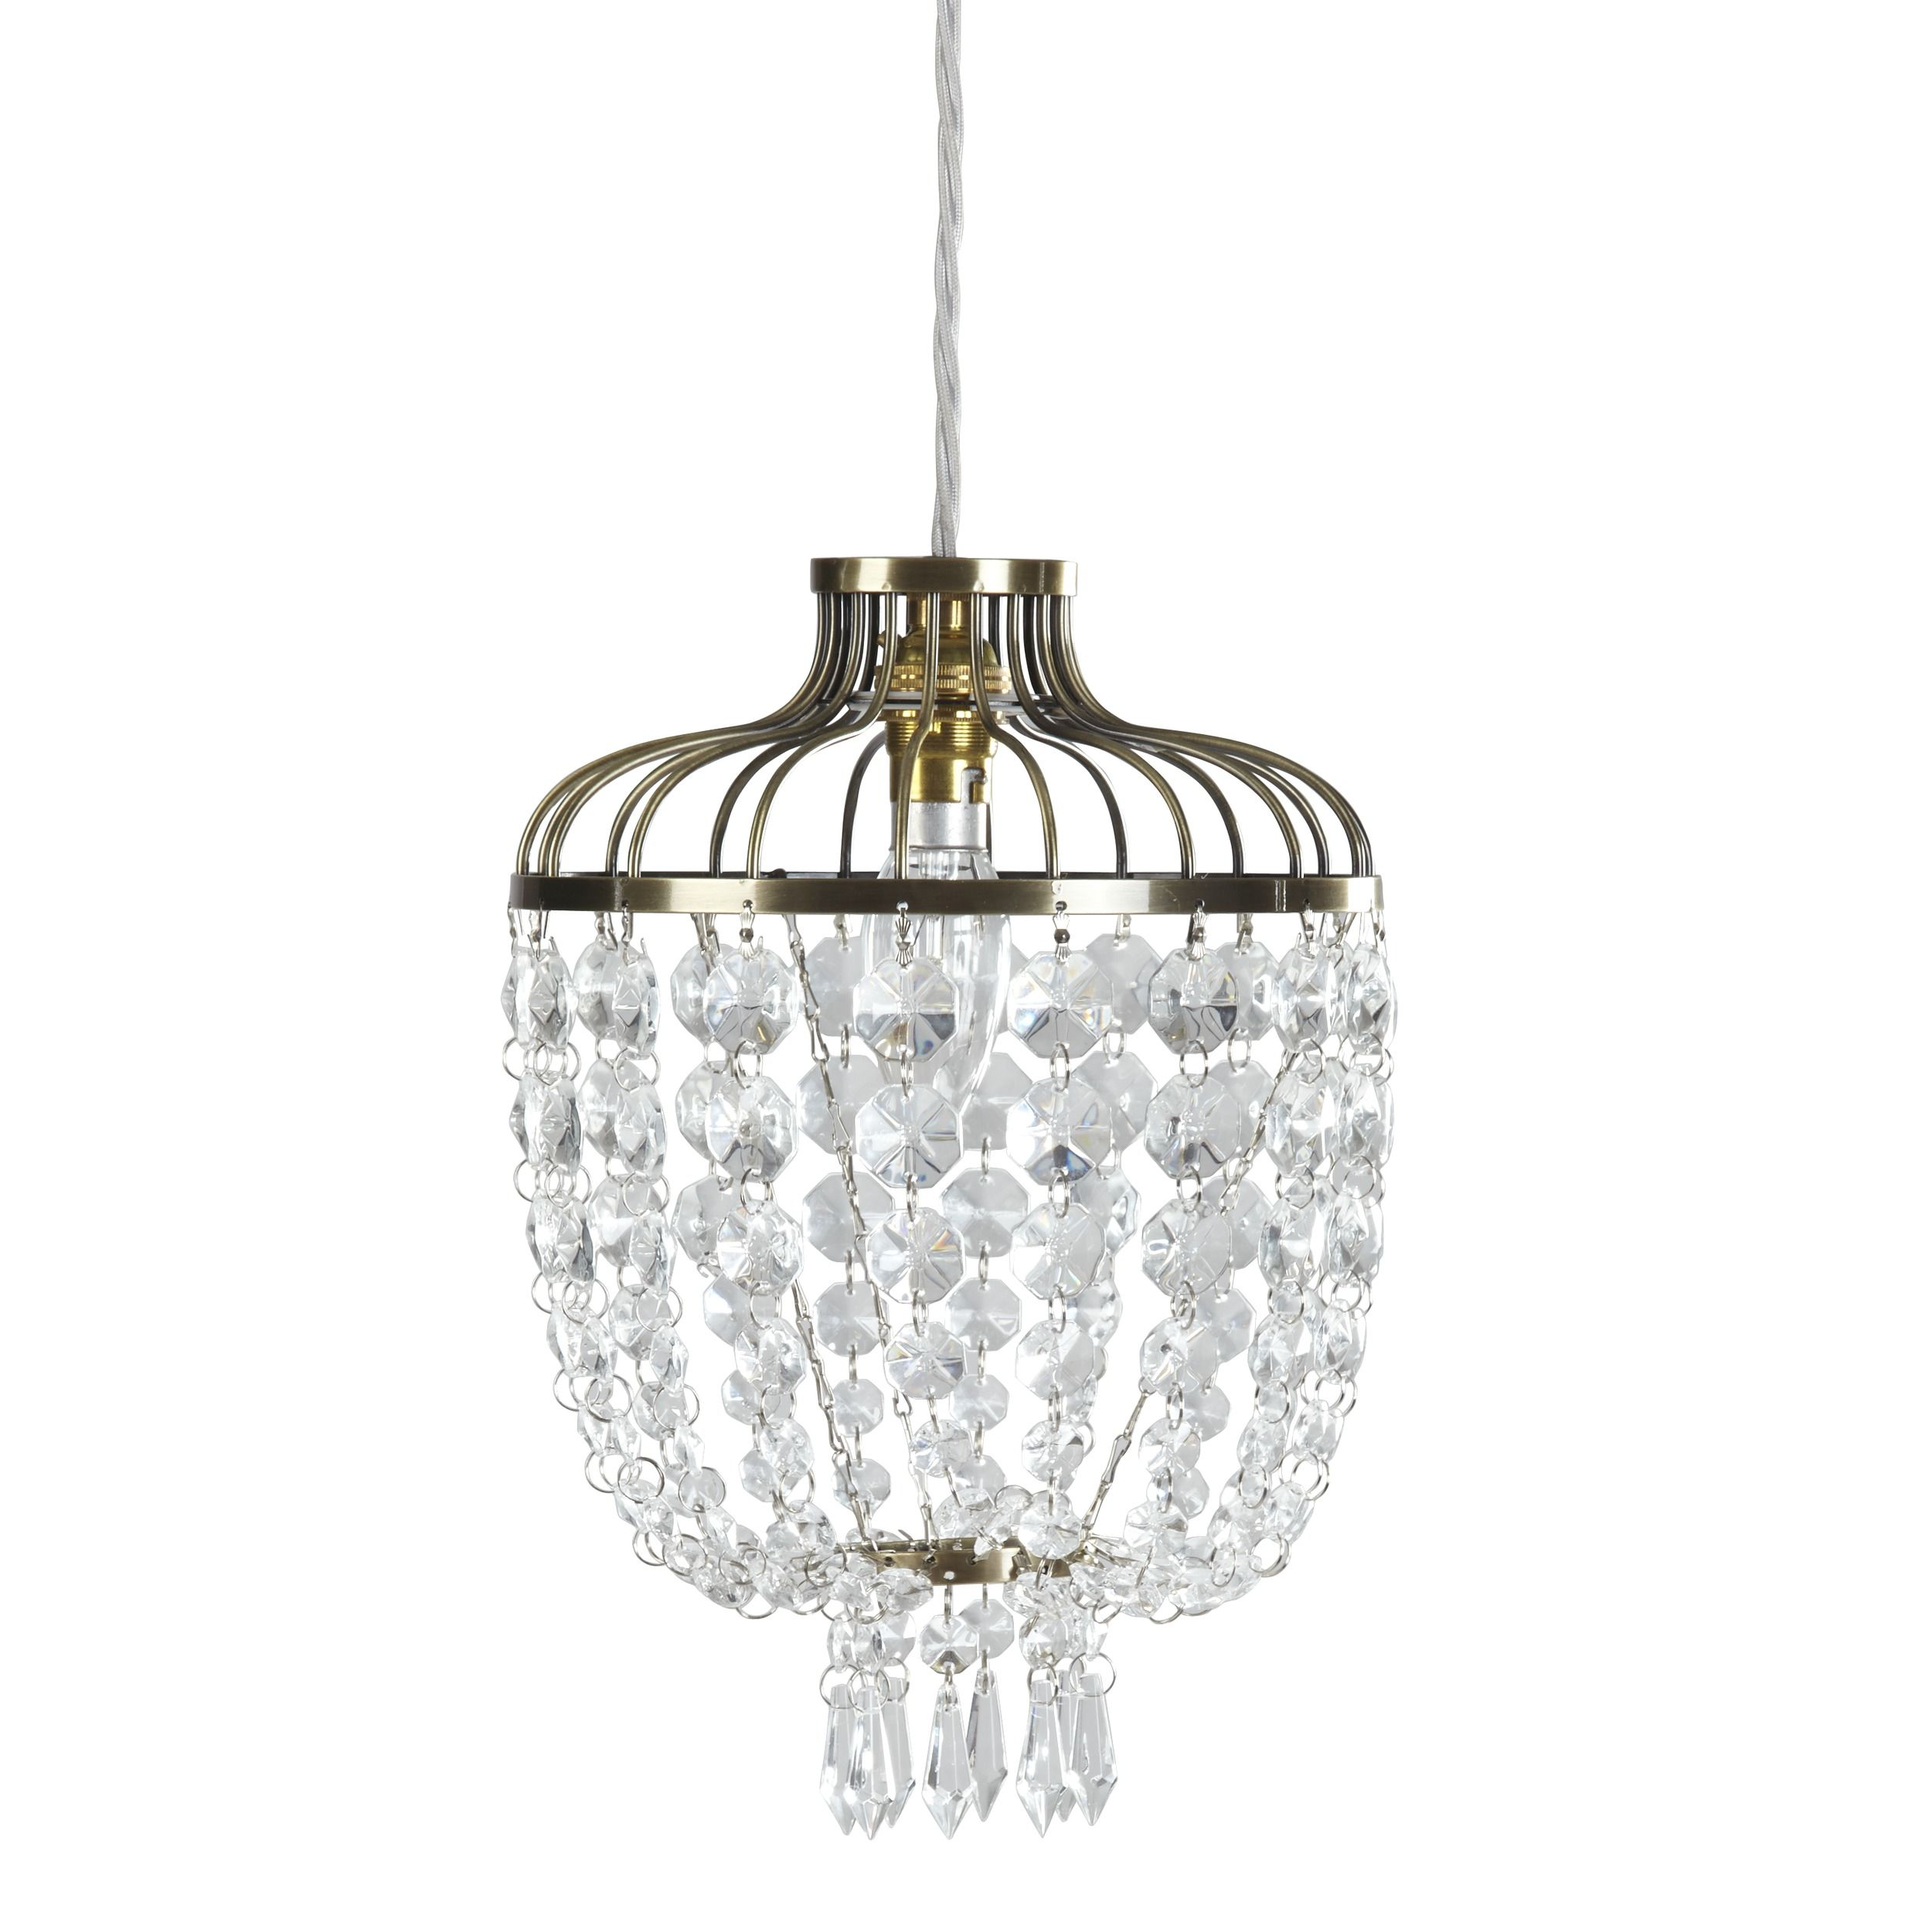 Eliza gold and crystal easy fit pendant light a 1920s inspired easy eliza gold and crystal easy fit pendant light a inspired easy fit ceiling pendant light designed with an antique gold colour frame hung with swags of aloadofball Gallery